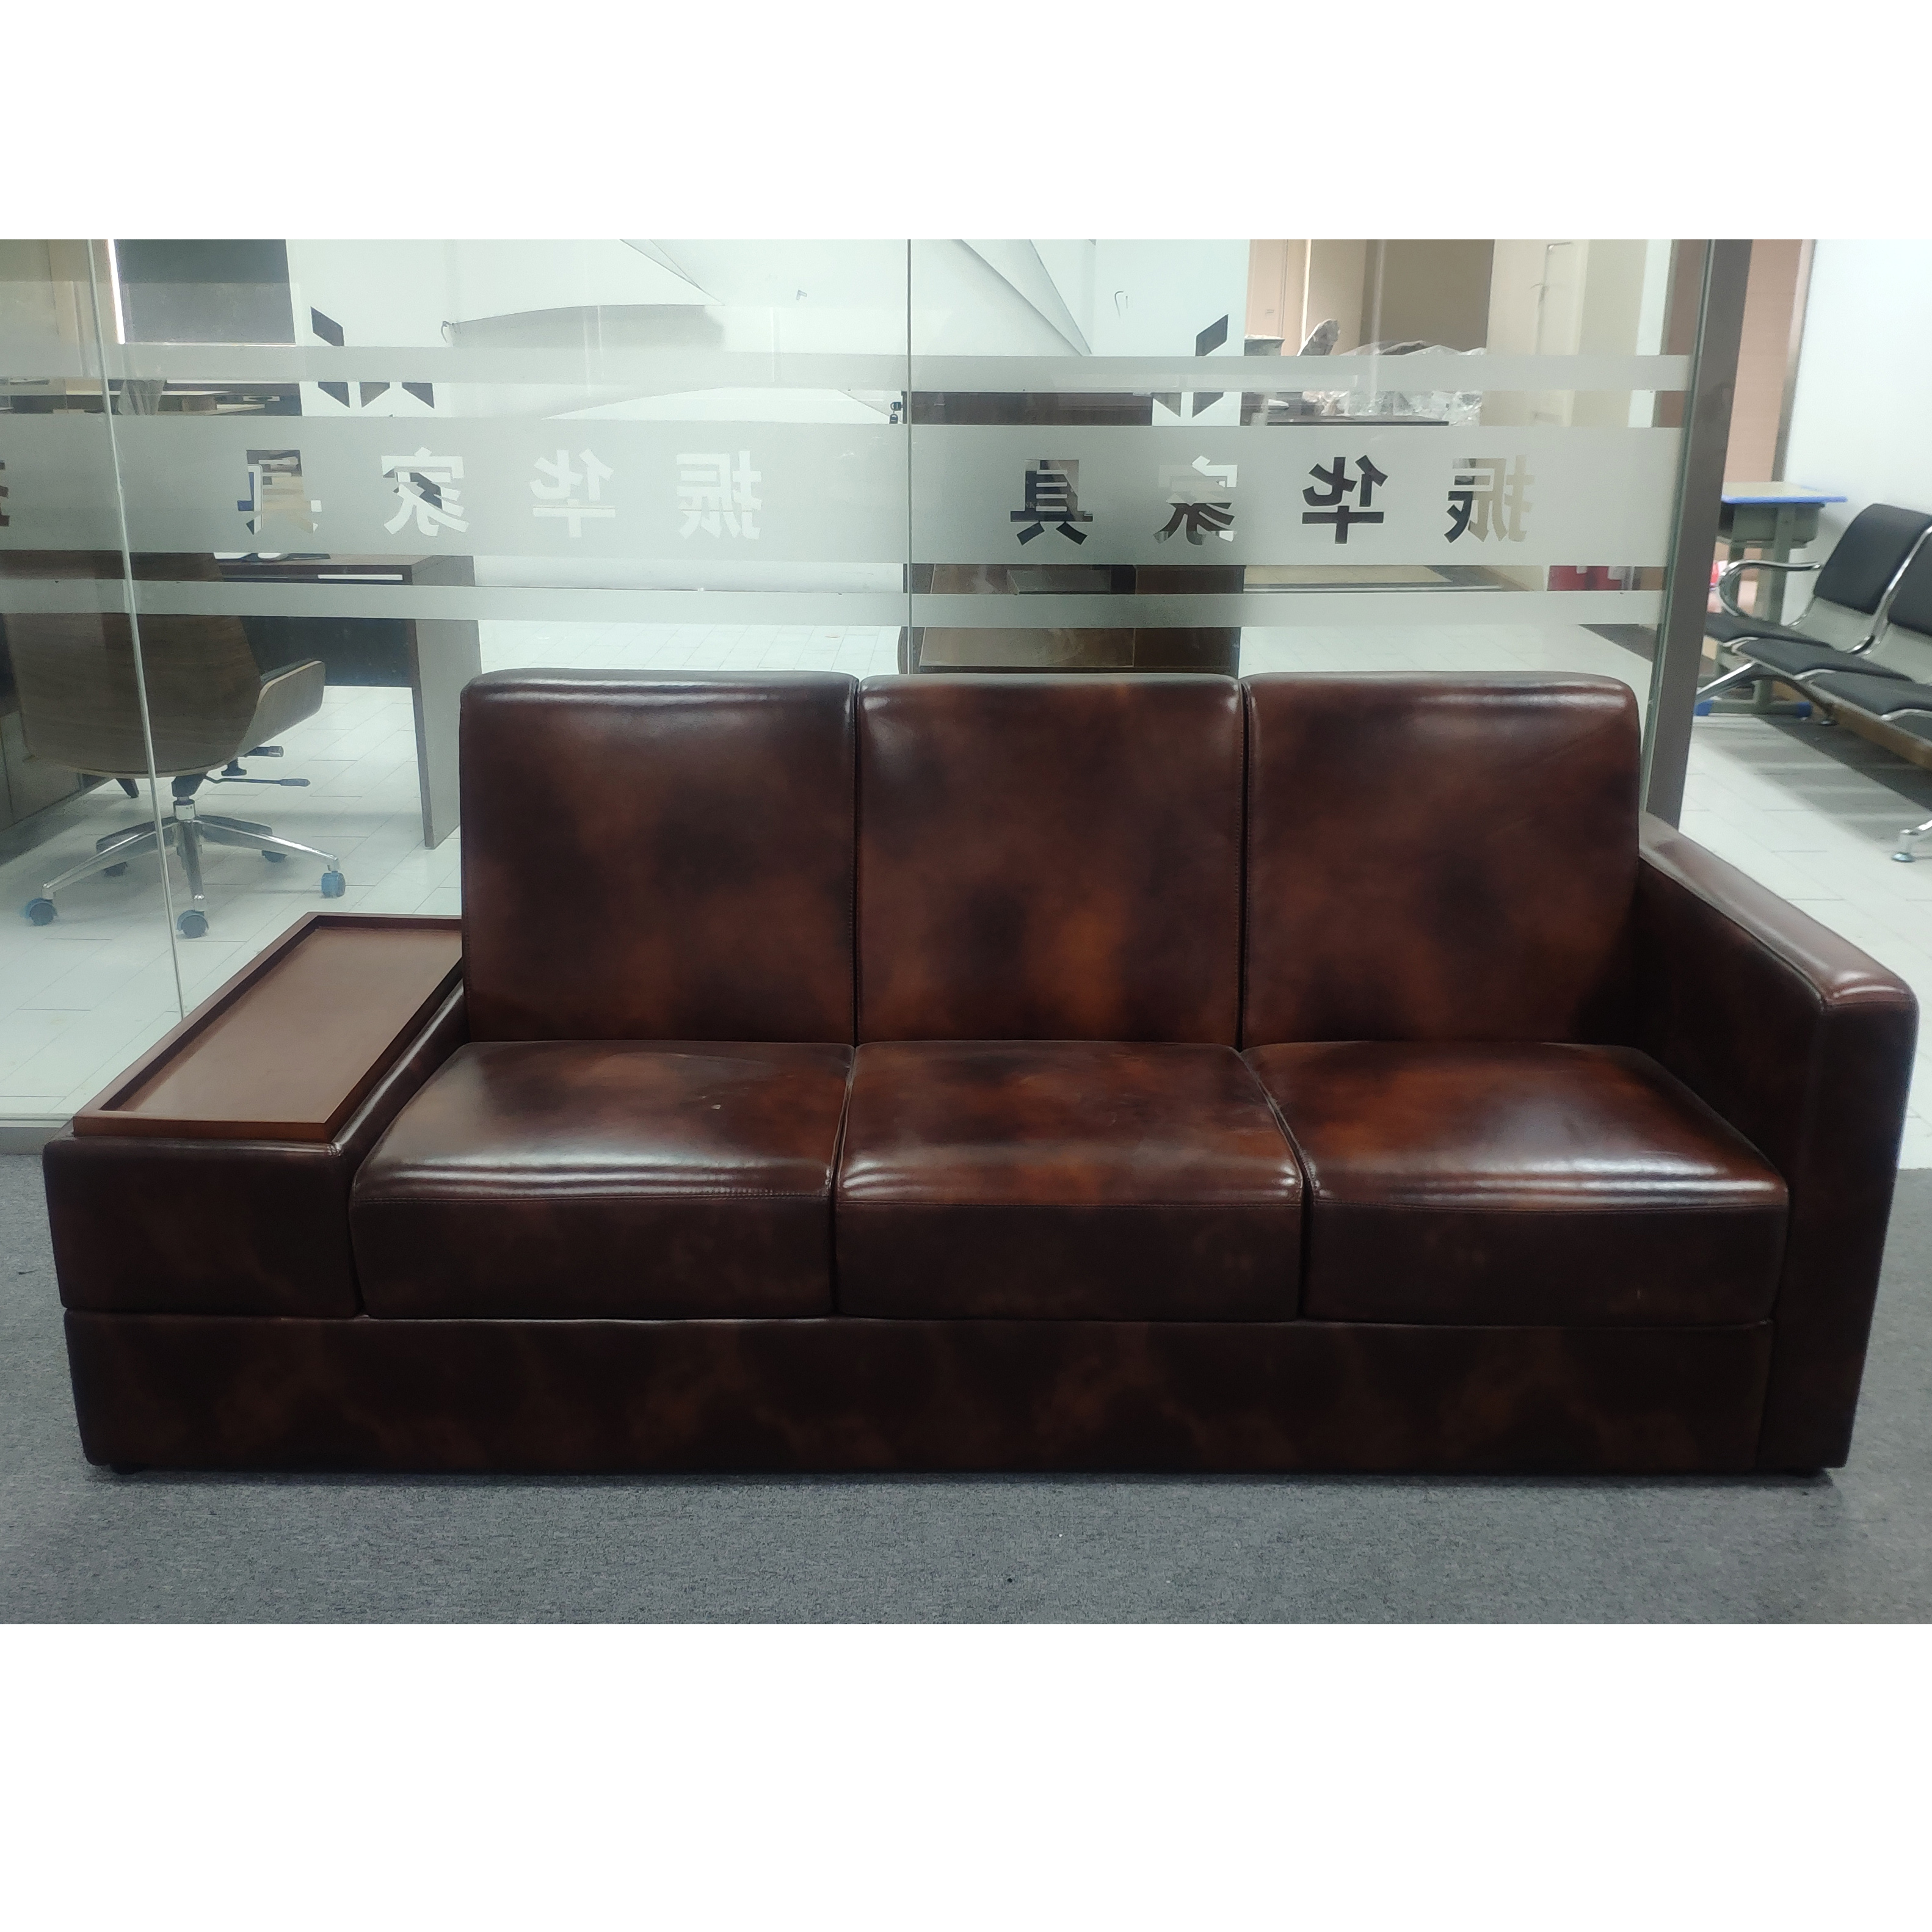 genuine leather sofa set couch living room sofa pure leather sofa set bed office furniture couch in china